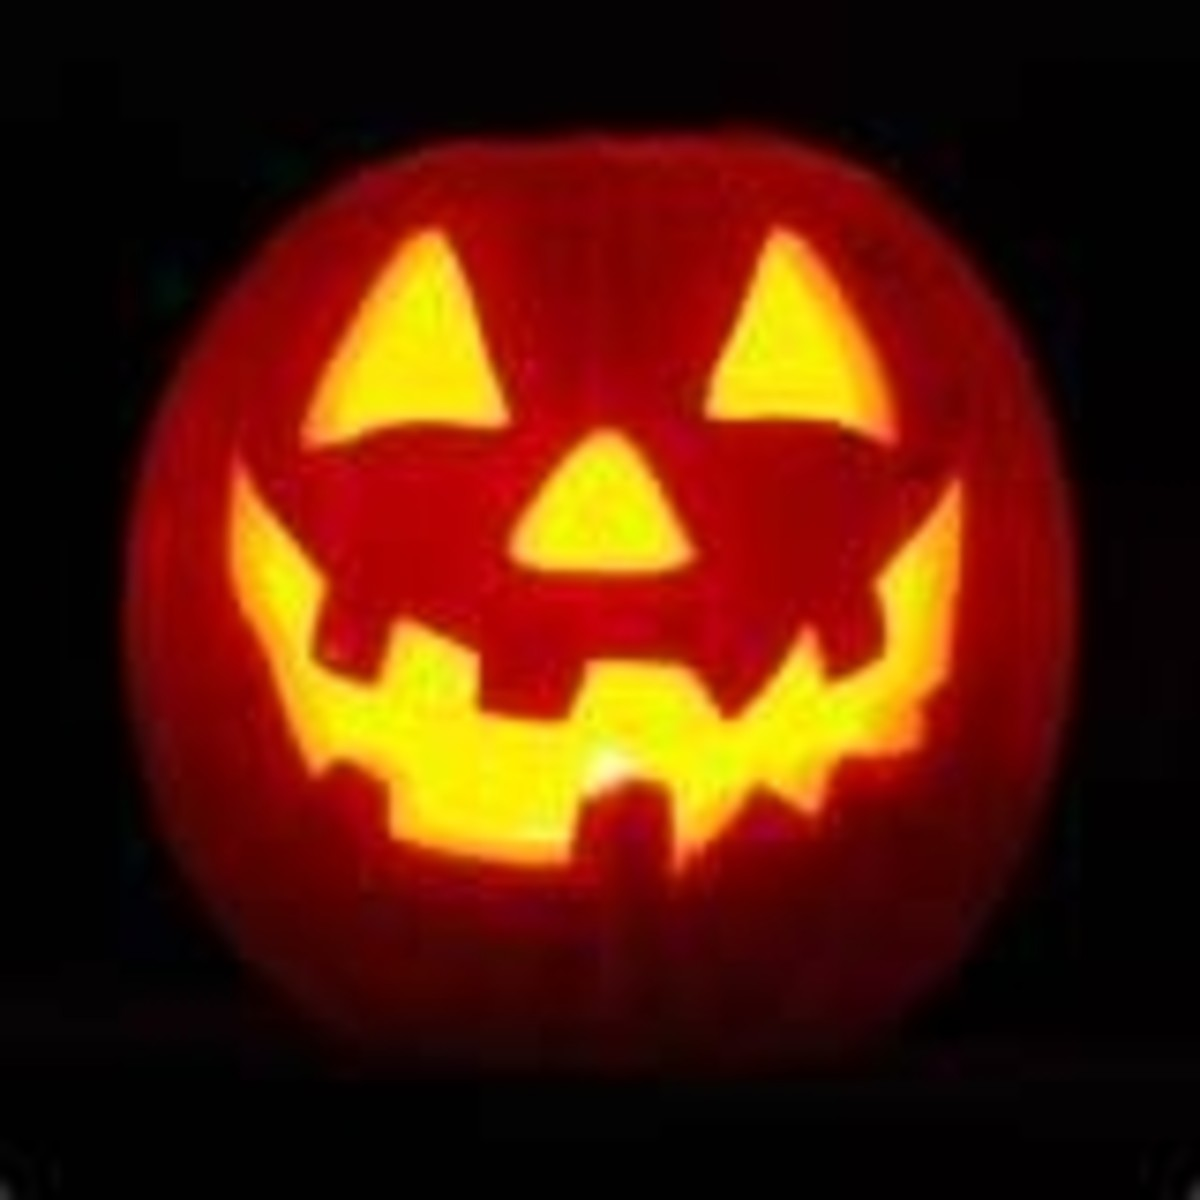 Another classic jack-o-lantern with triangular eyes and nose and toothy grin. Photo was shared on Flickr.